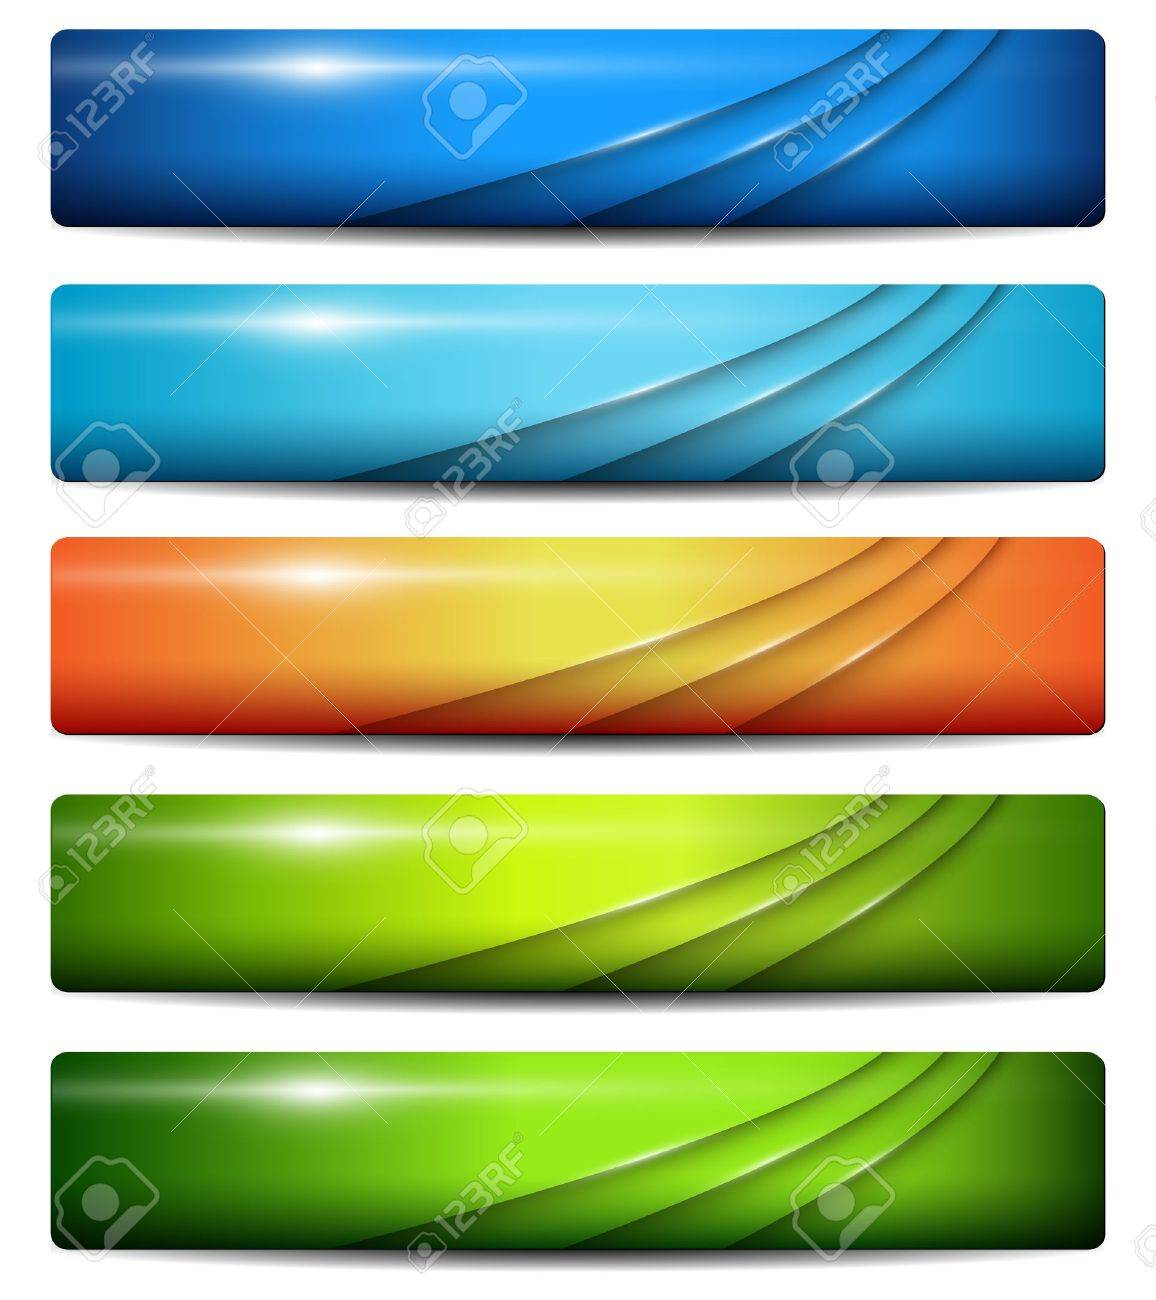 Banners, headers colorful glossy, vector. Stock Vector - 18524147